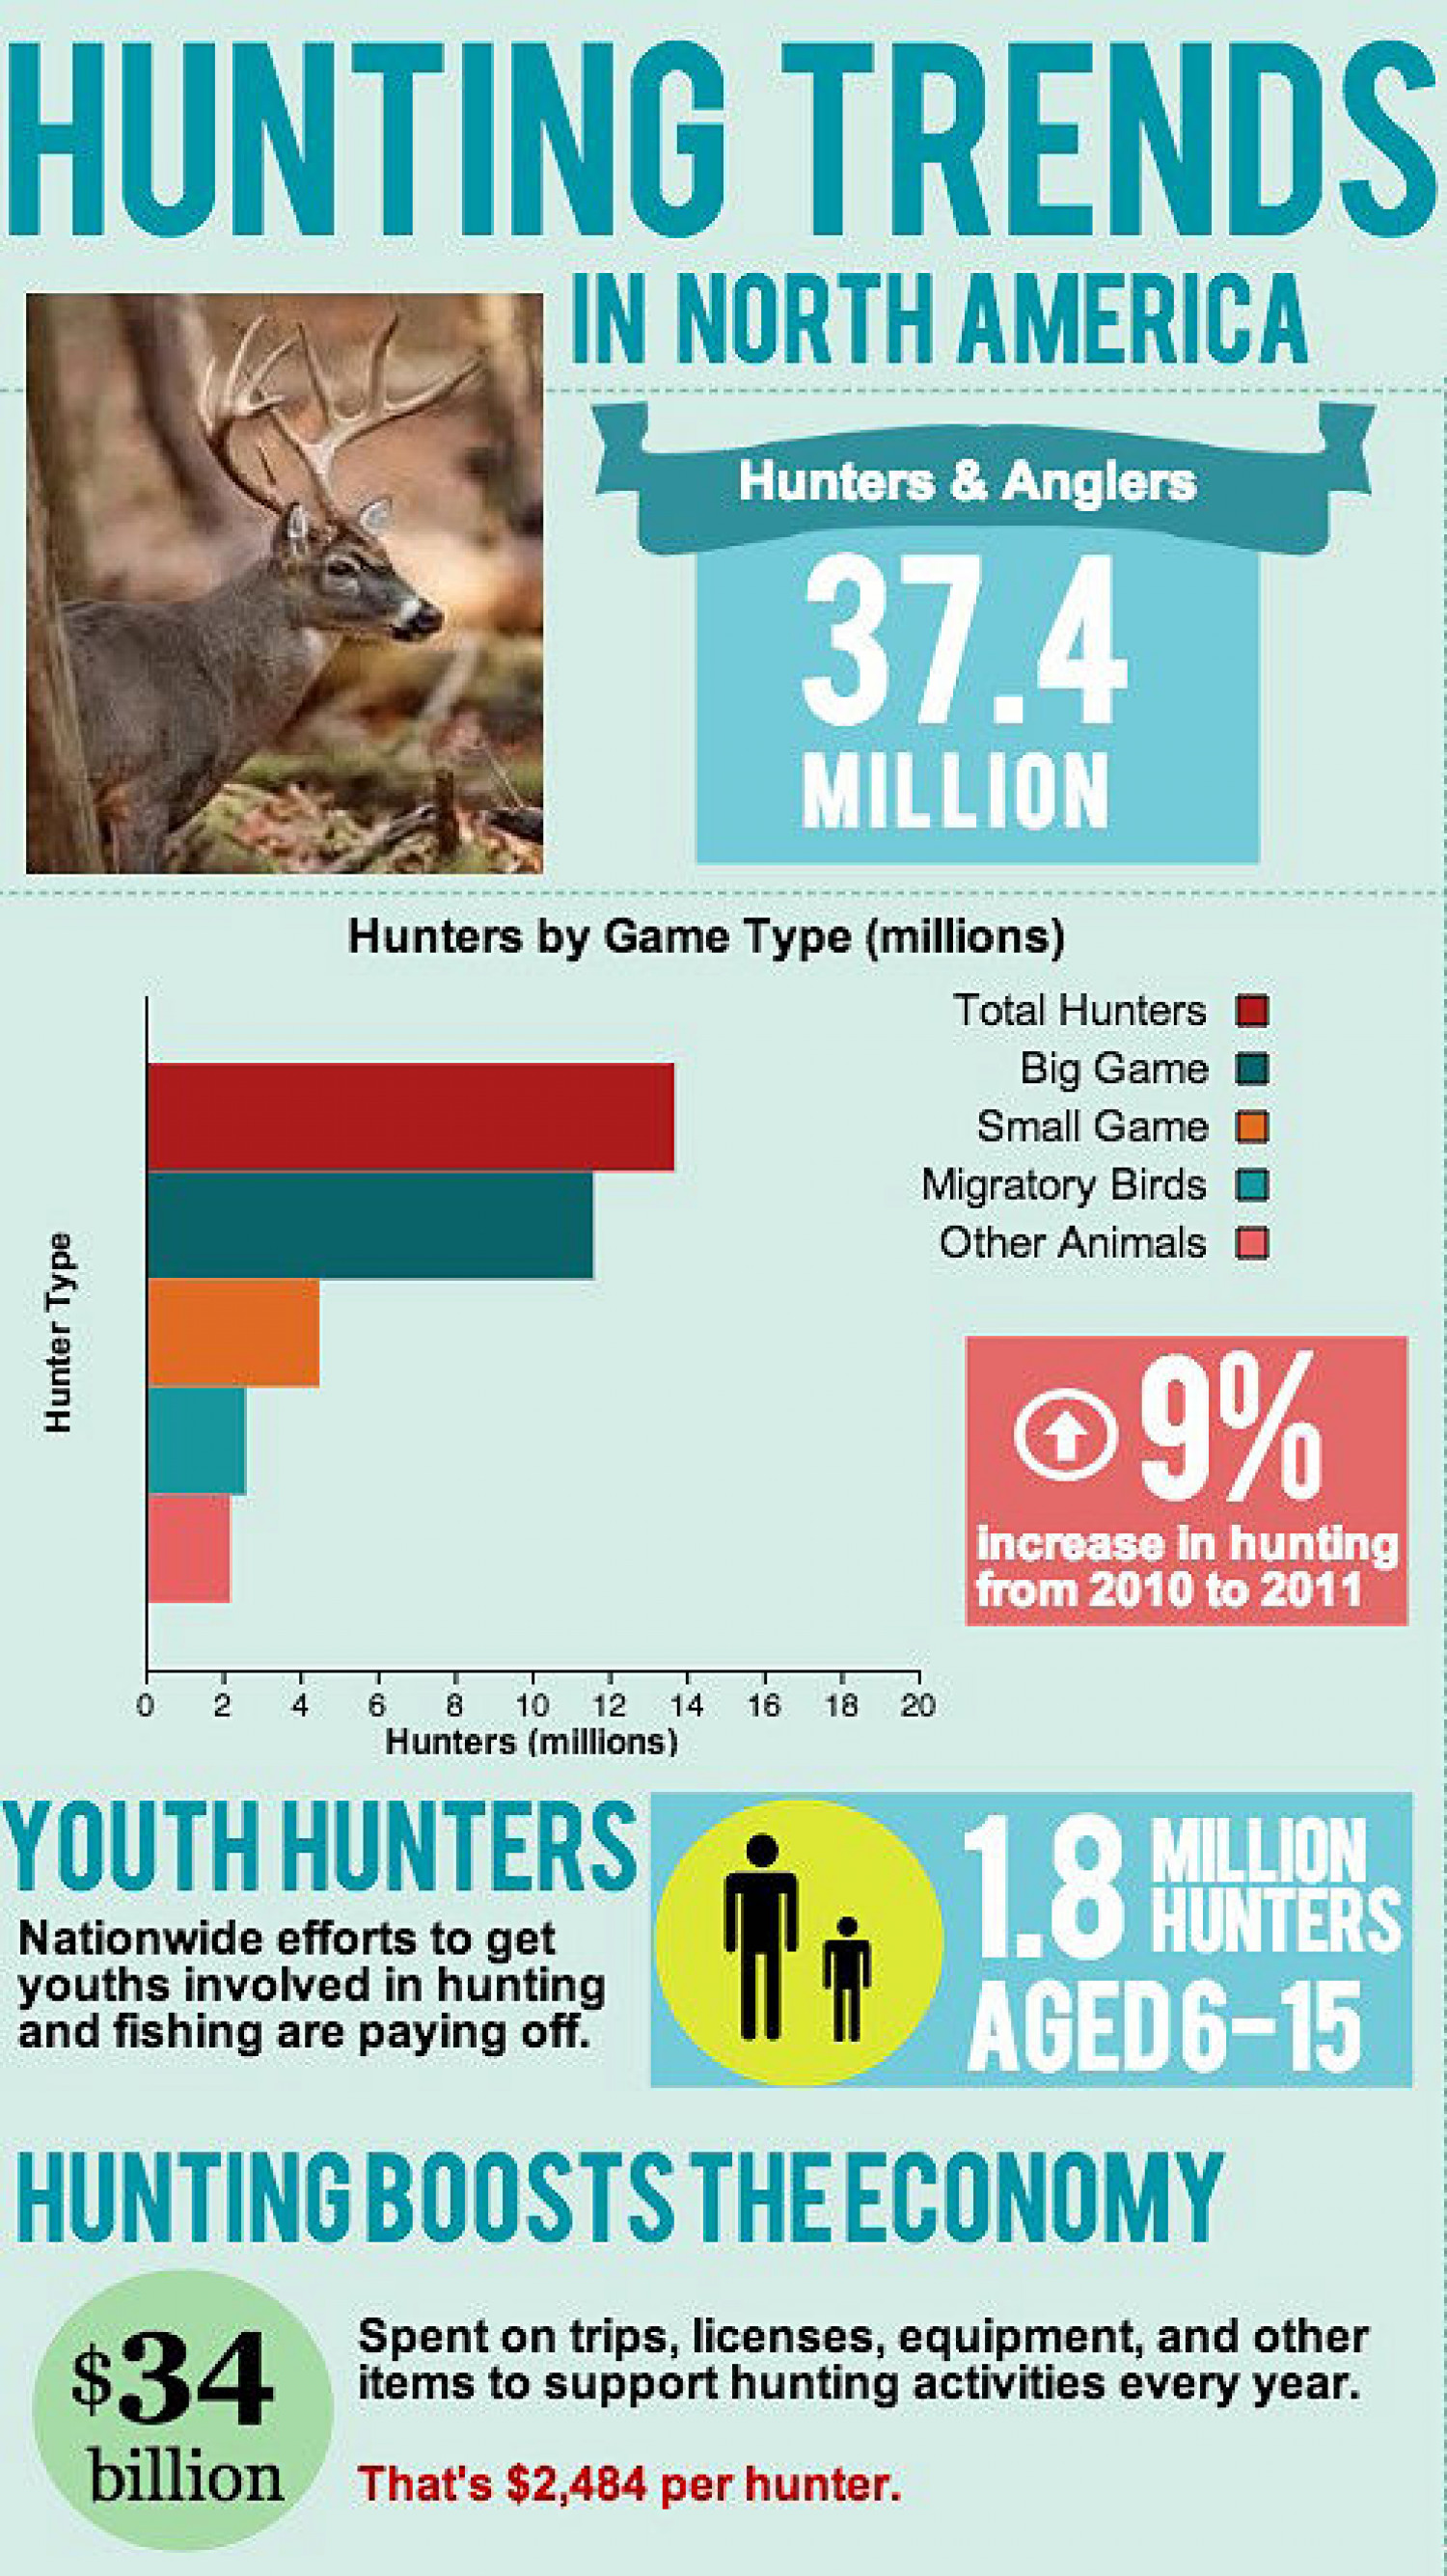 Hunting Trends in North America Infographic